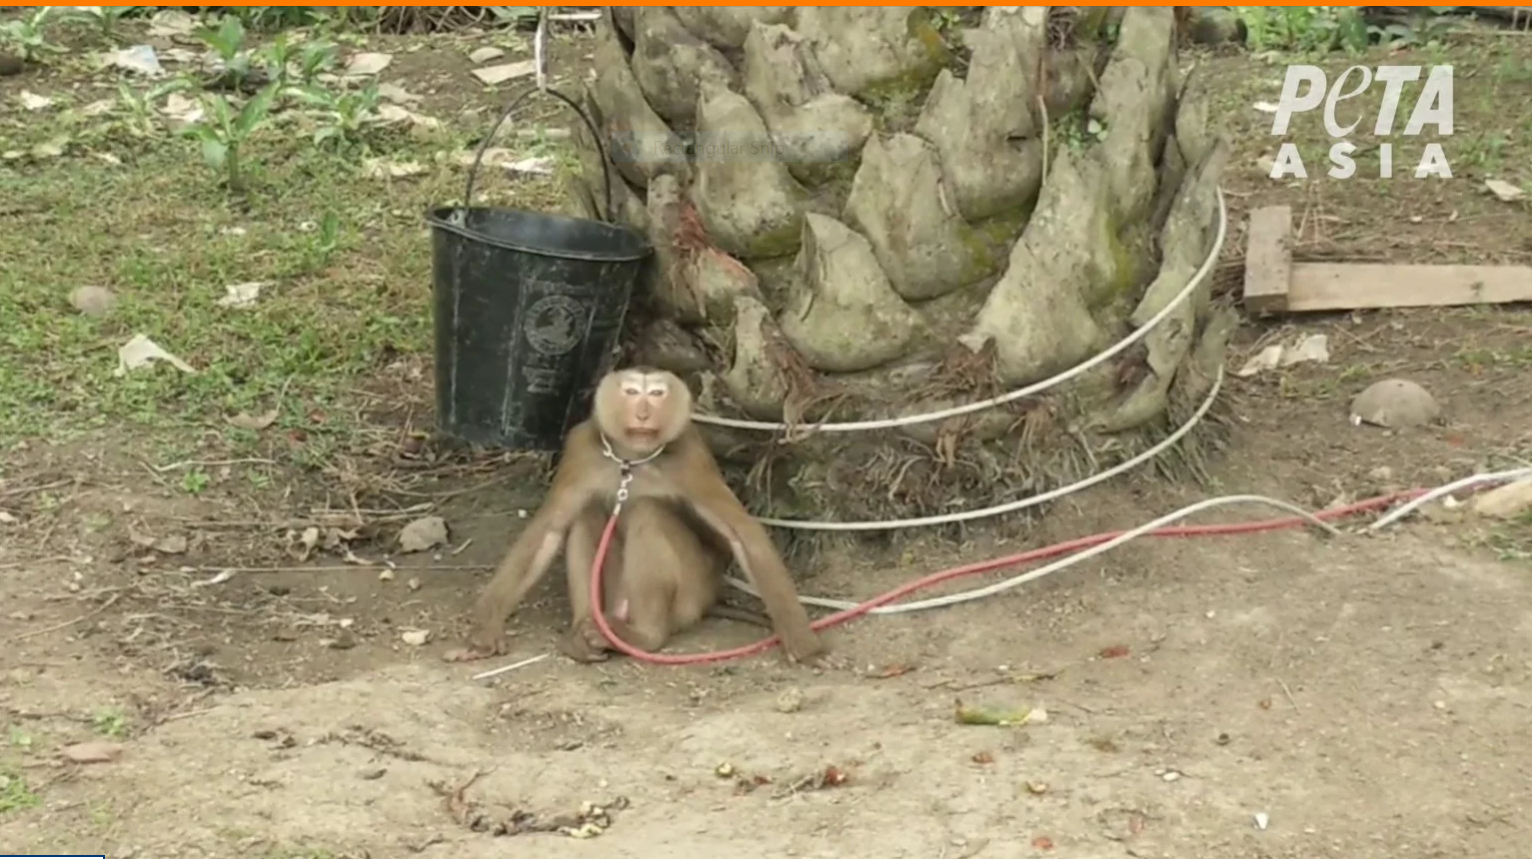 western retailers boycott thai coconuts over inhumane monkey labour